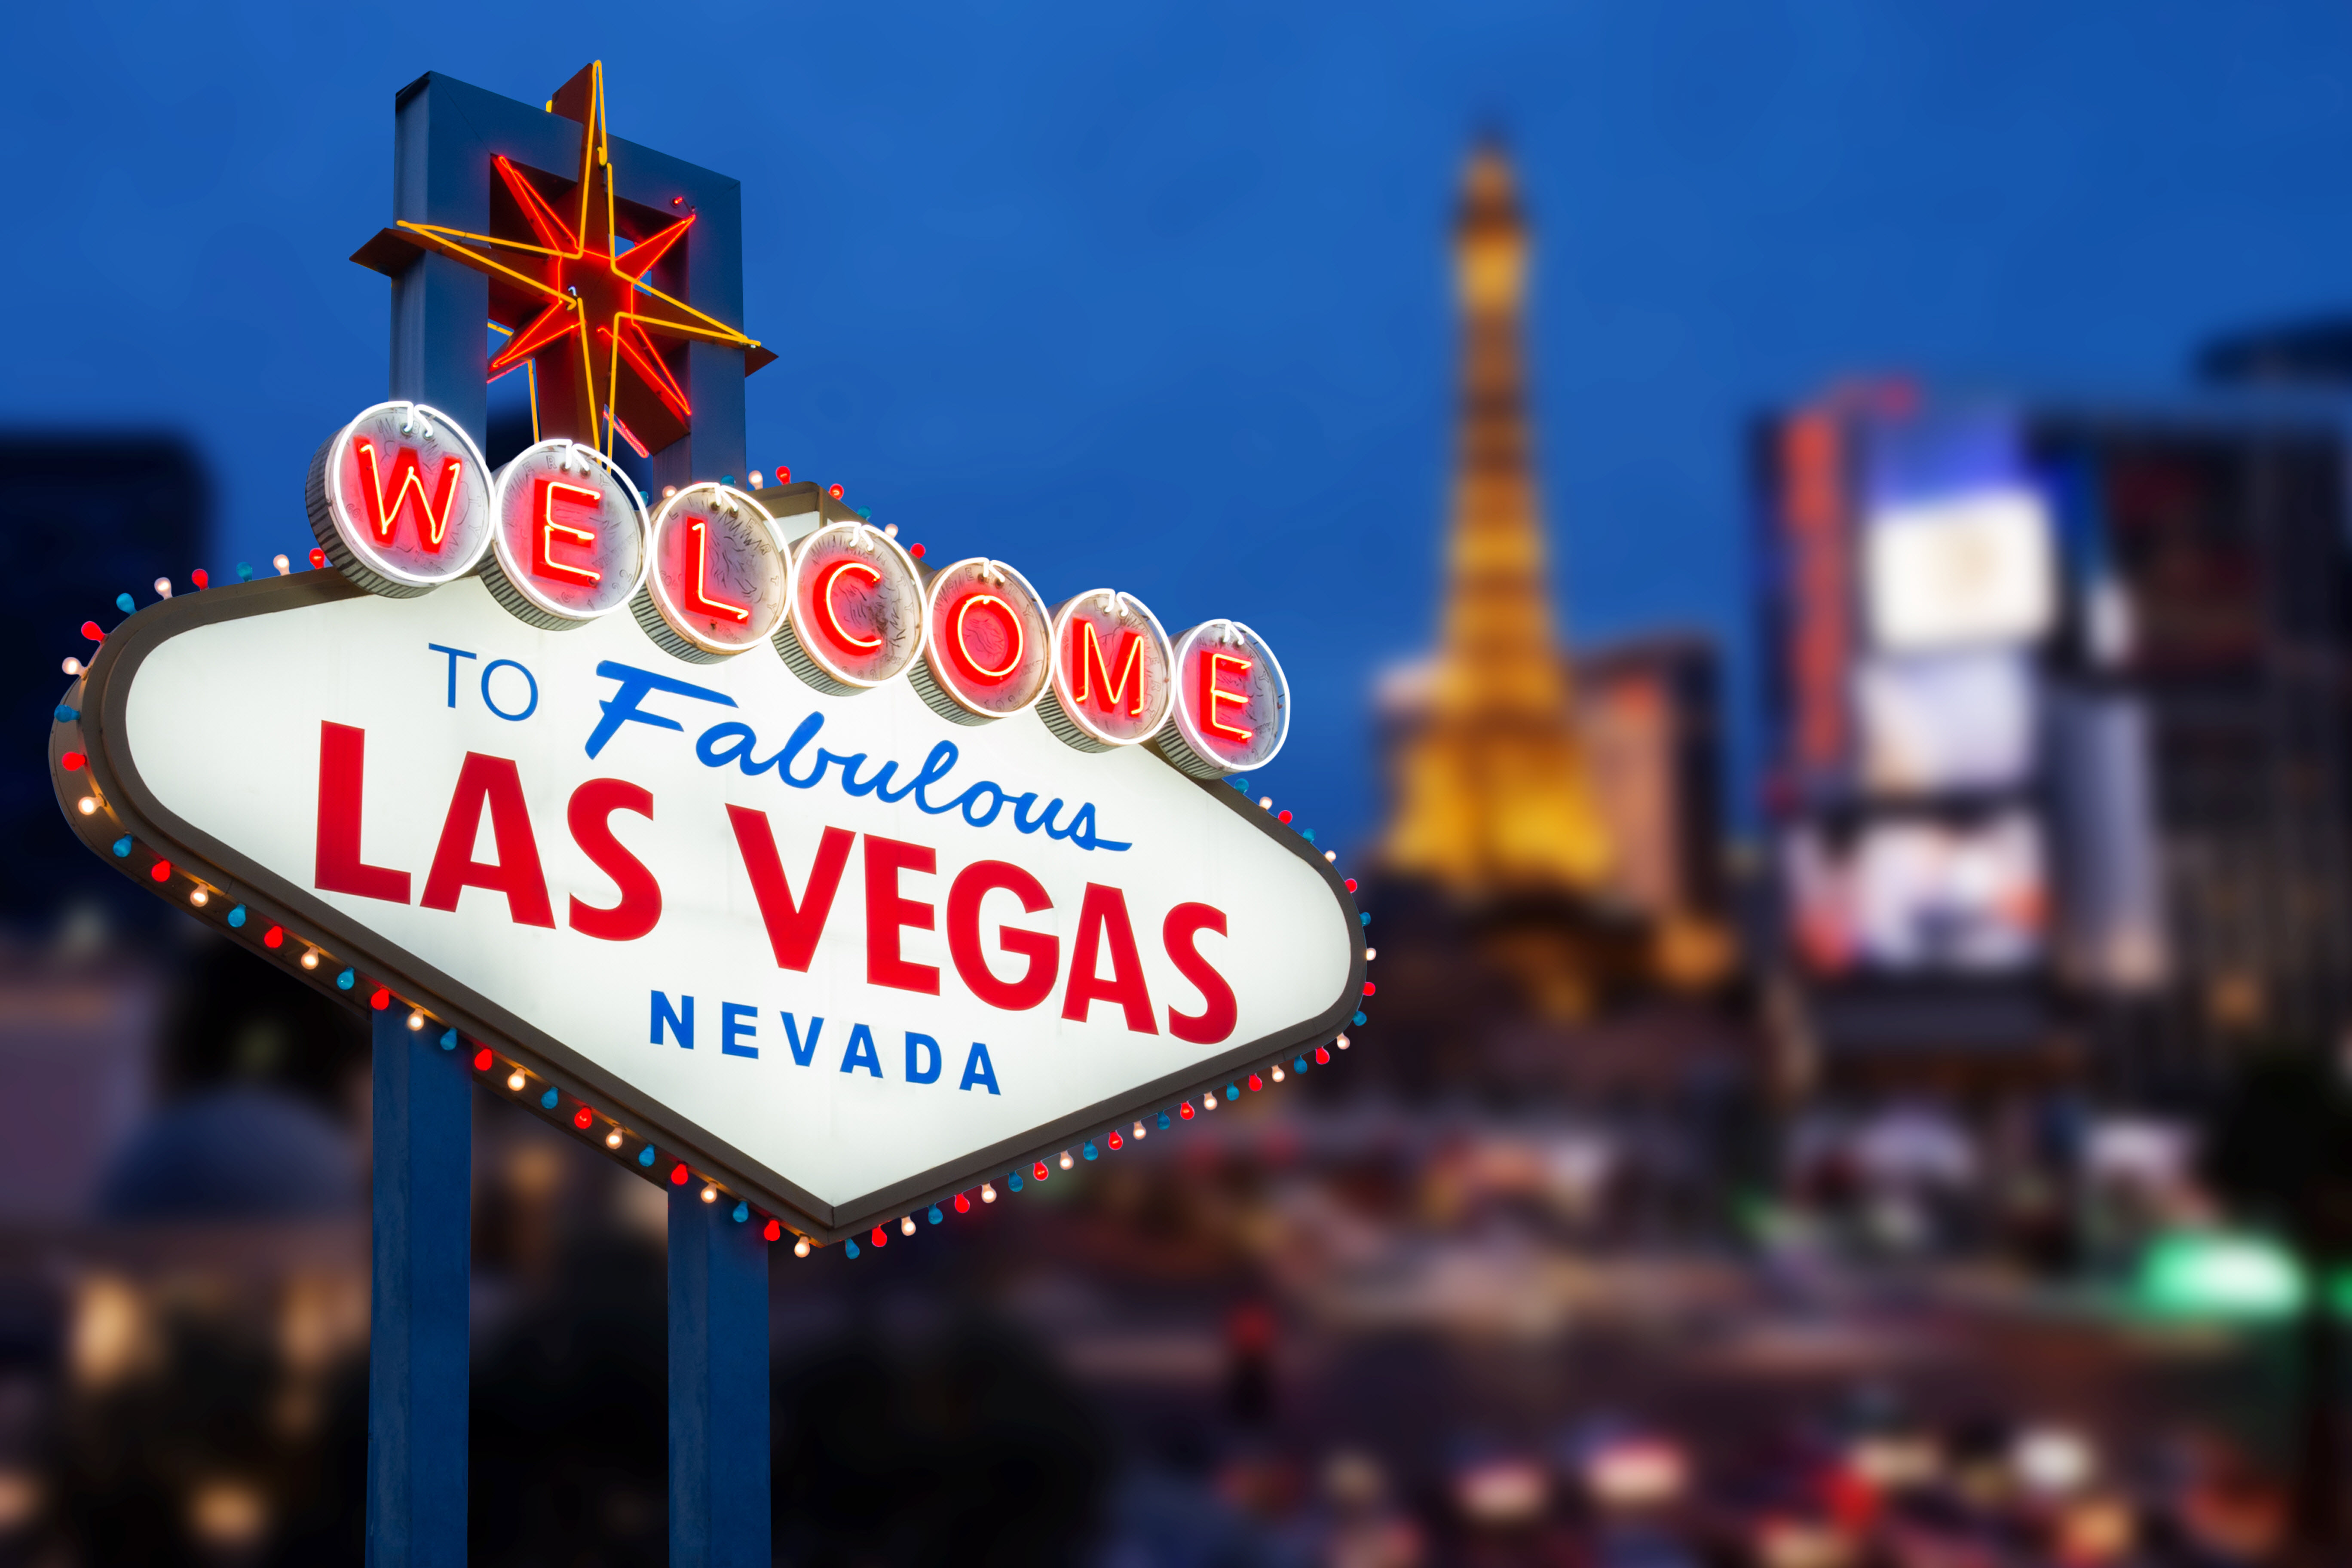 las vegas trip Visit vegascom to get the best rate on las vegas hotels guaranteed, find deals and save on las vegas show tickets, tours, clubs, attractions & more.